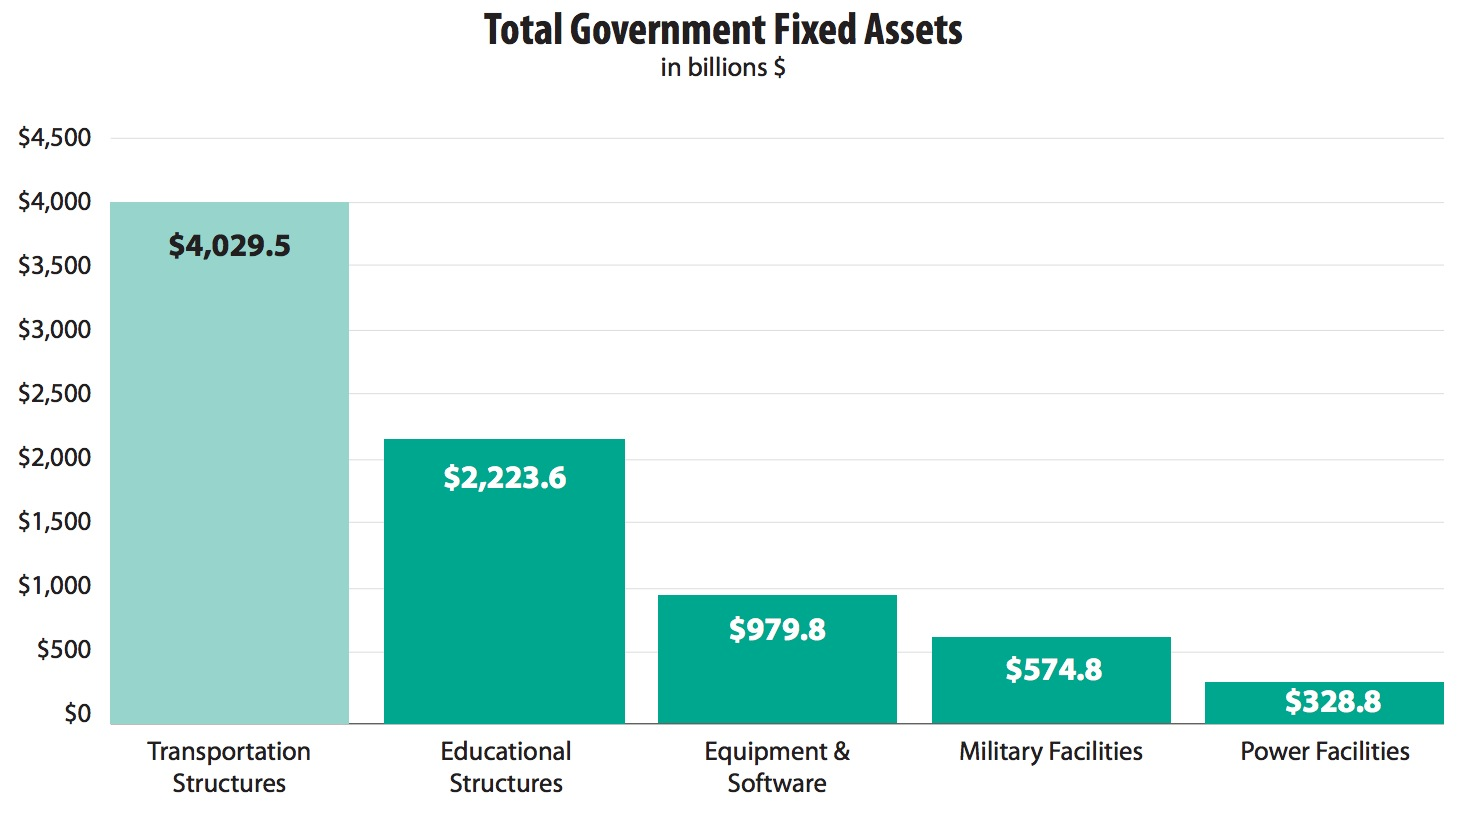 Total Government Fixed Assets, in billions